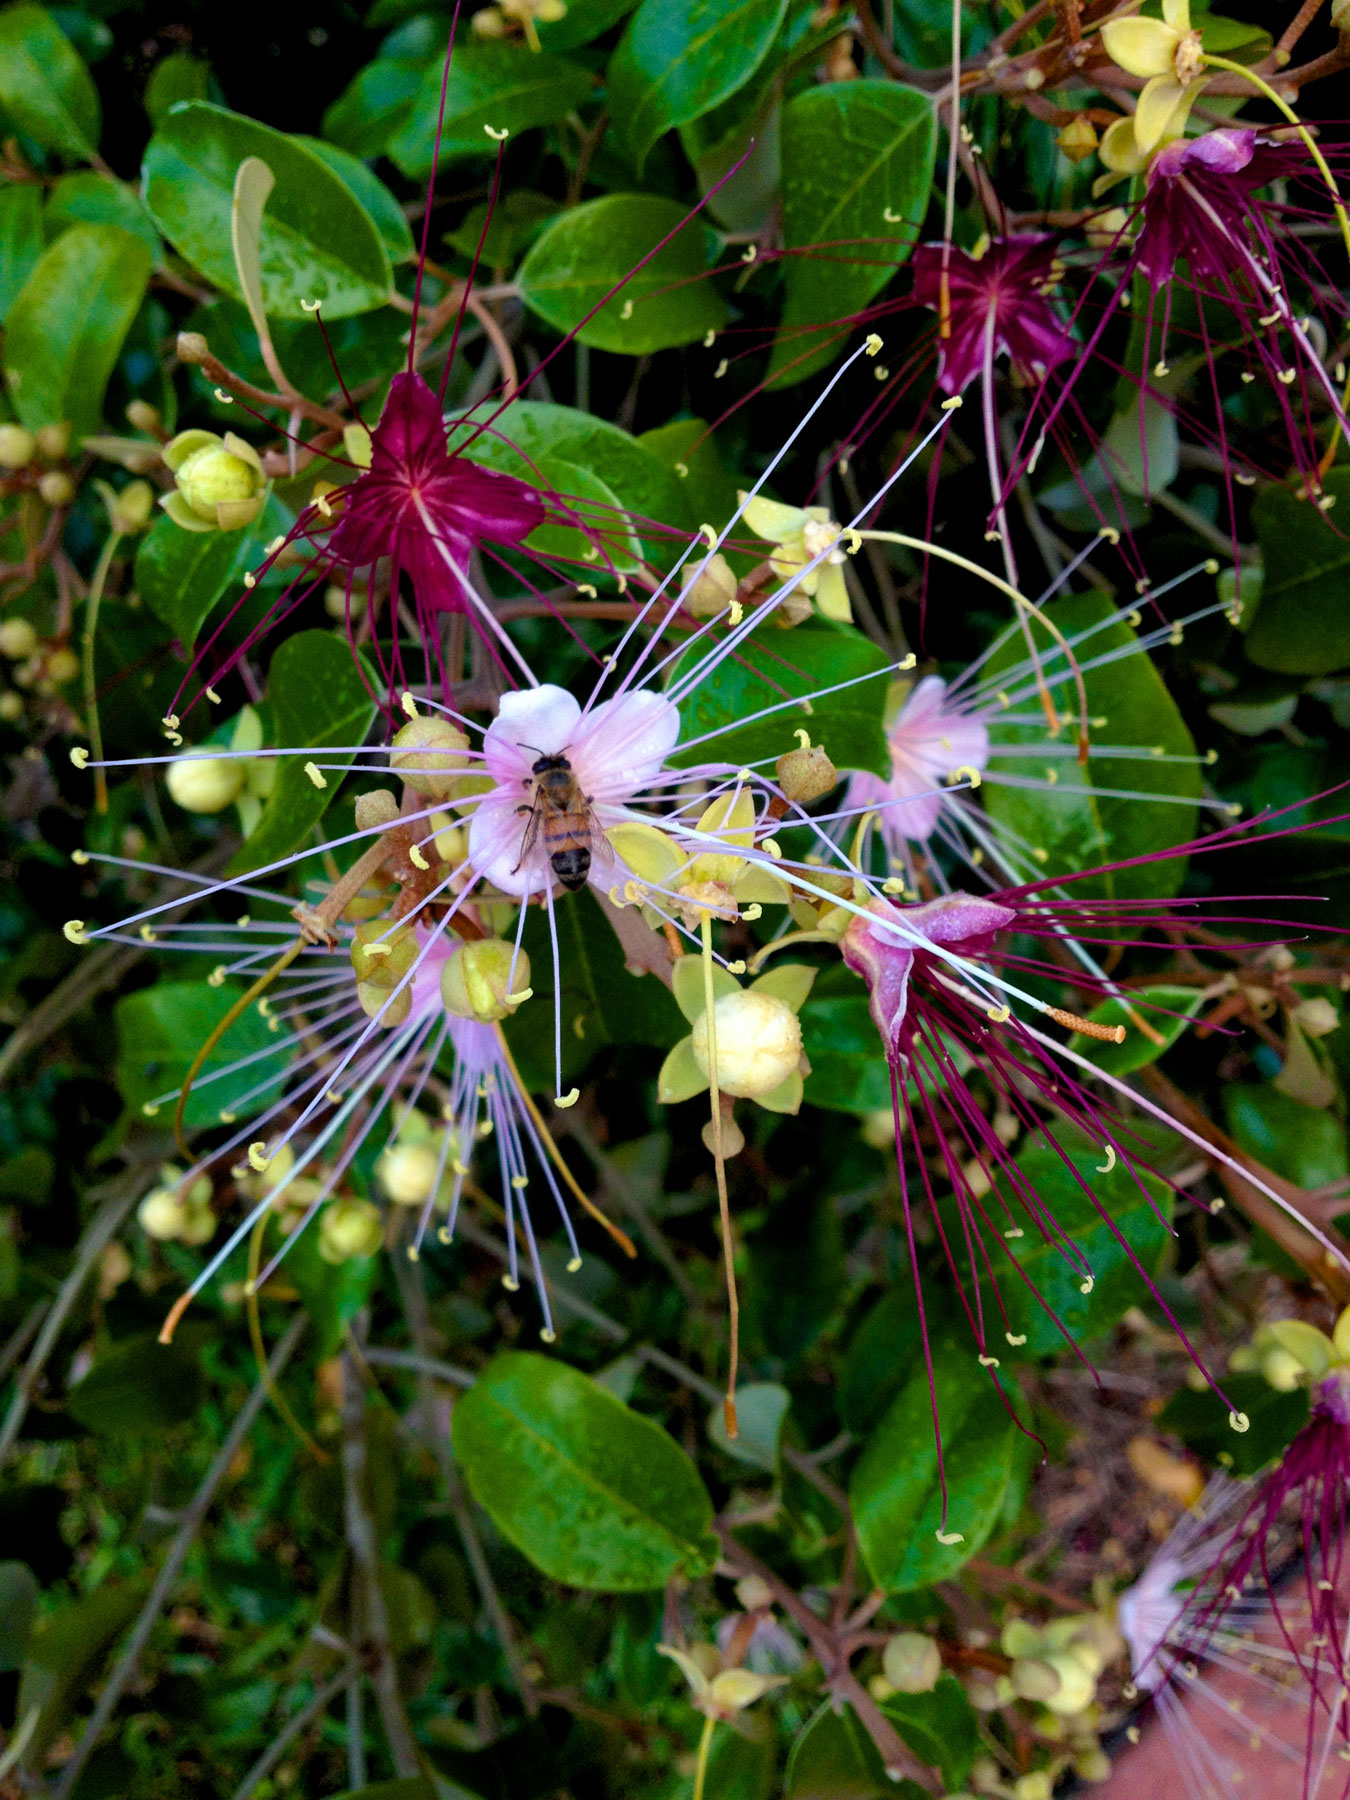 Backyard Plant Jamaica Caper Or Flowers Attract Bees